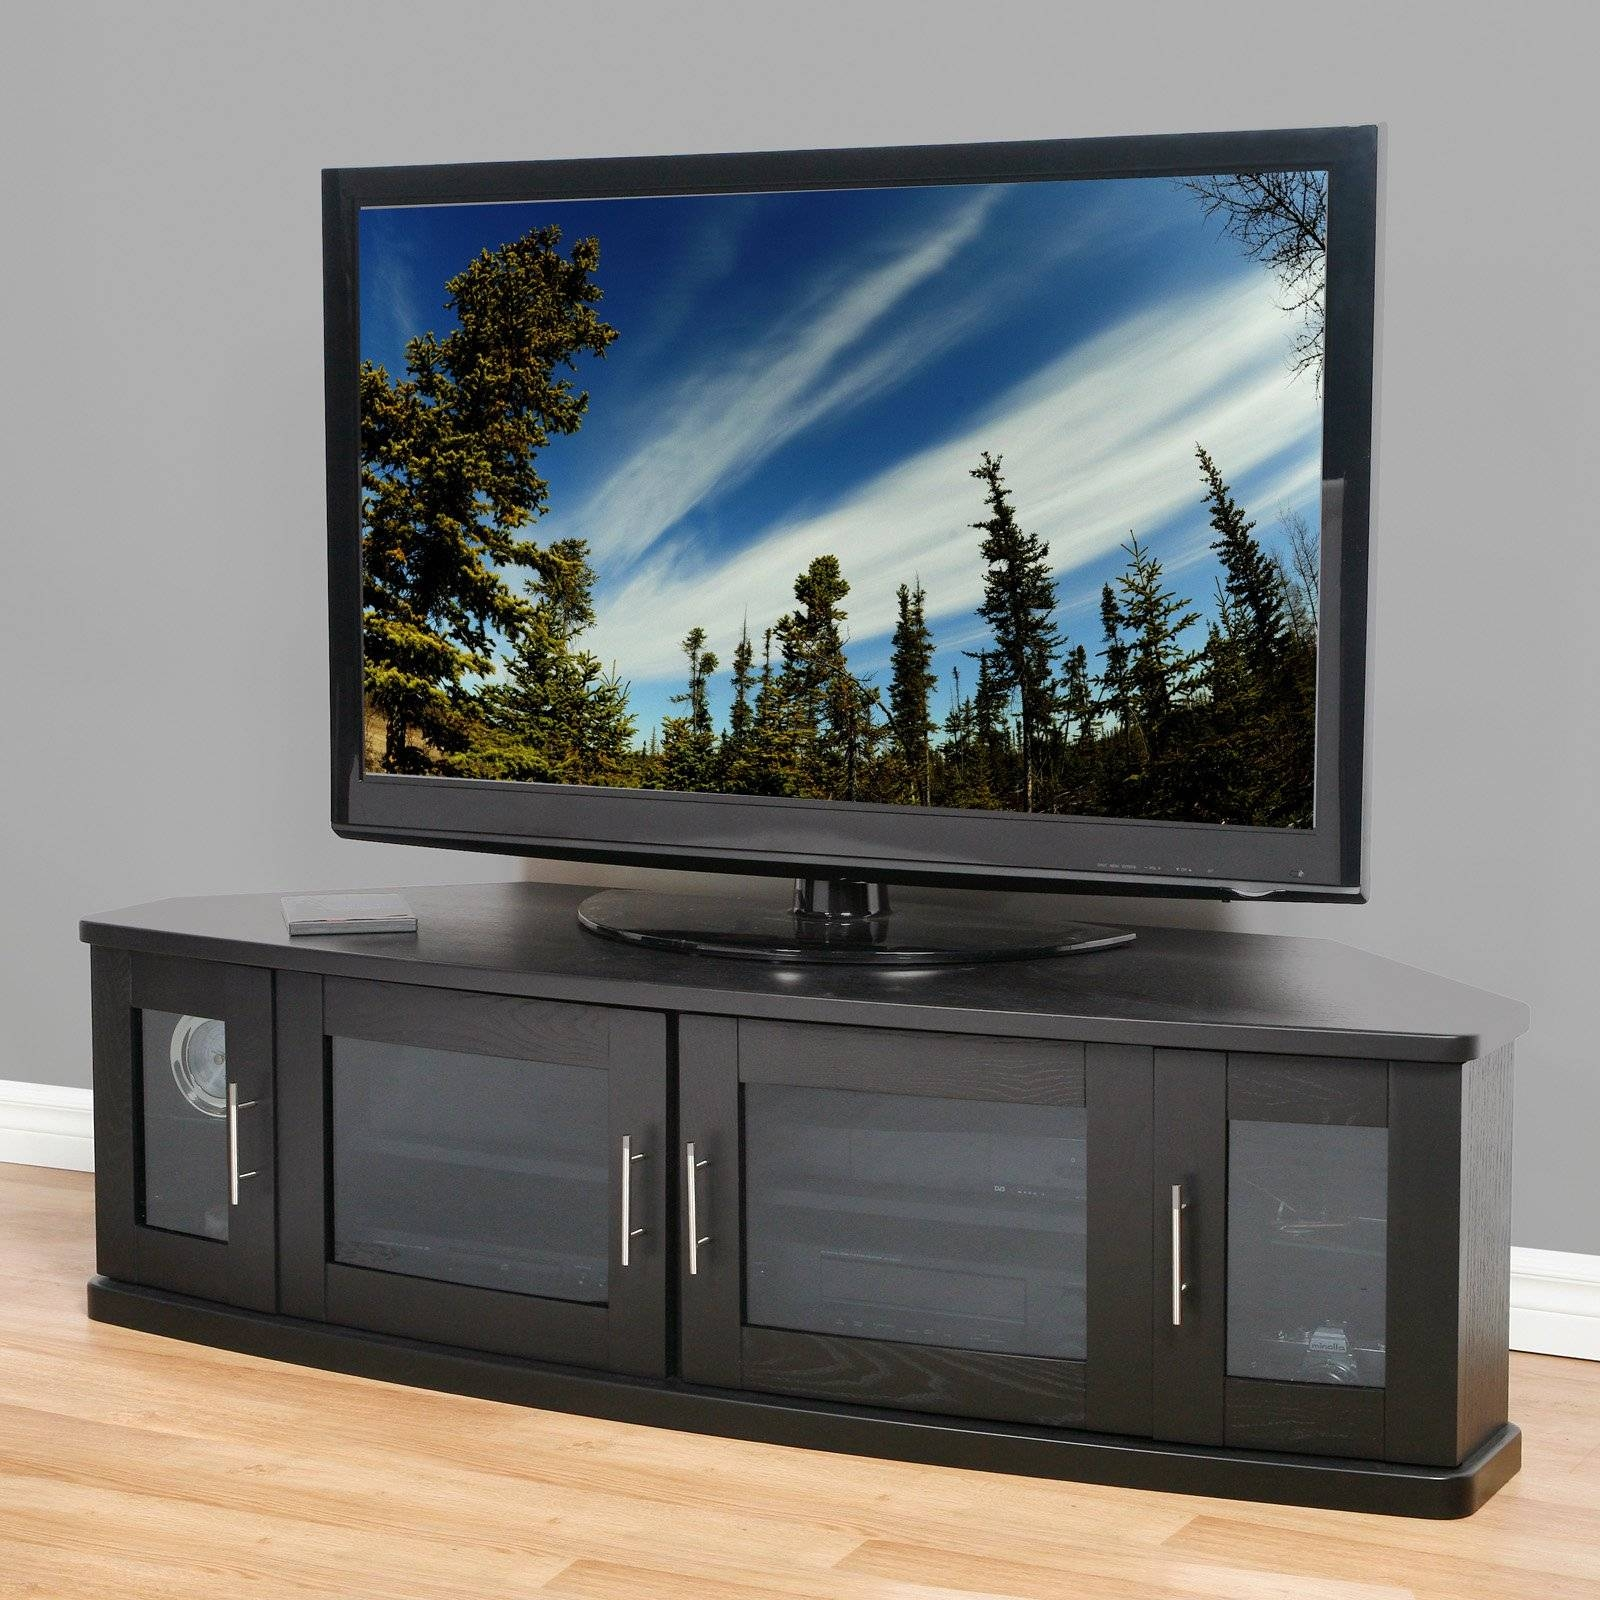 Corner Tv Stand For 60 Inch Flat Screen Tv in Cheap Corner Tv Stands For Flat Screen (Image 4 of 15)